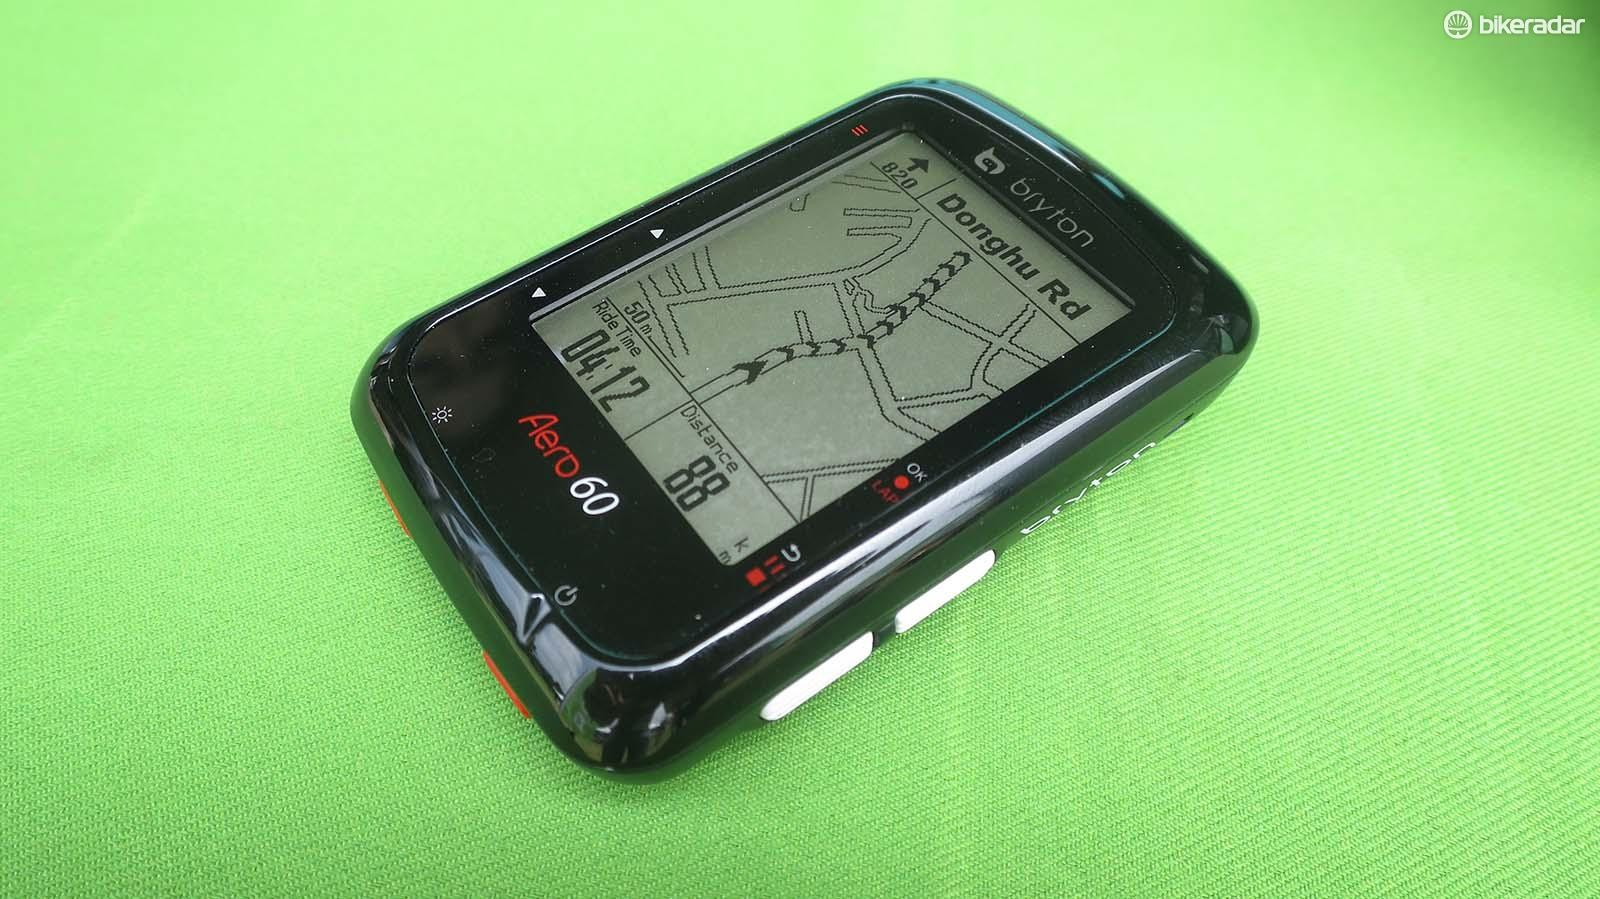 The Aero 60 offers full mapping via the open source OpenStreetMap software